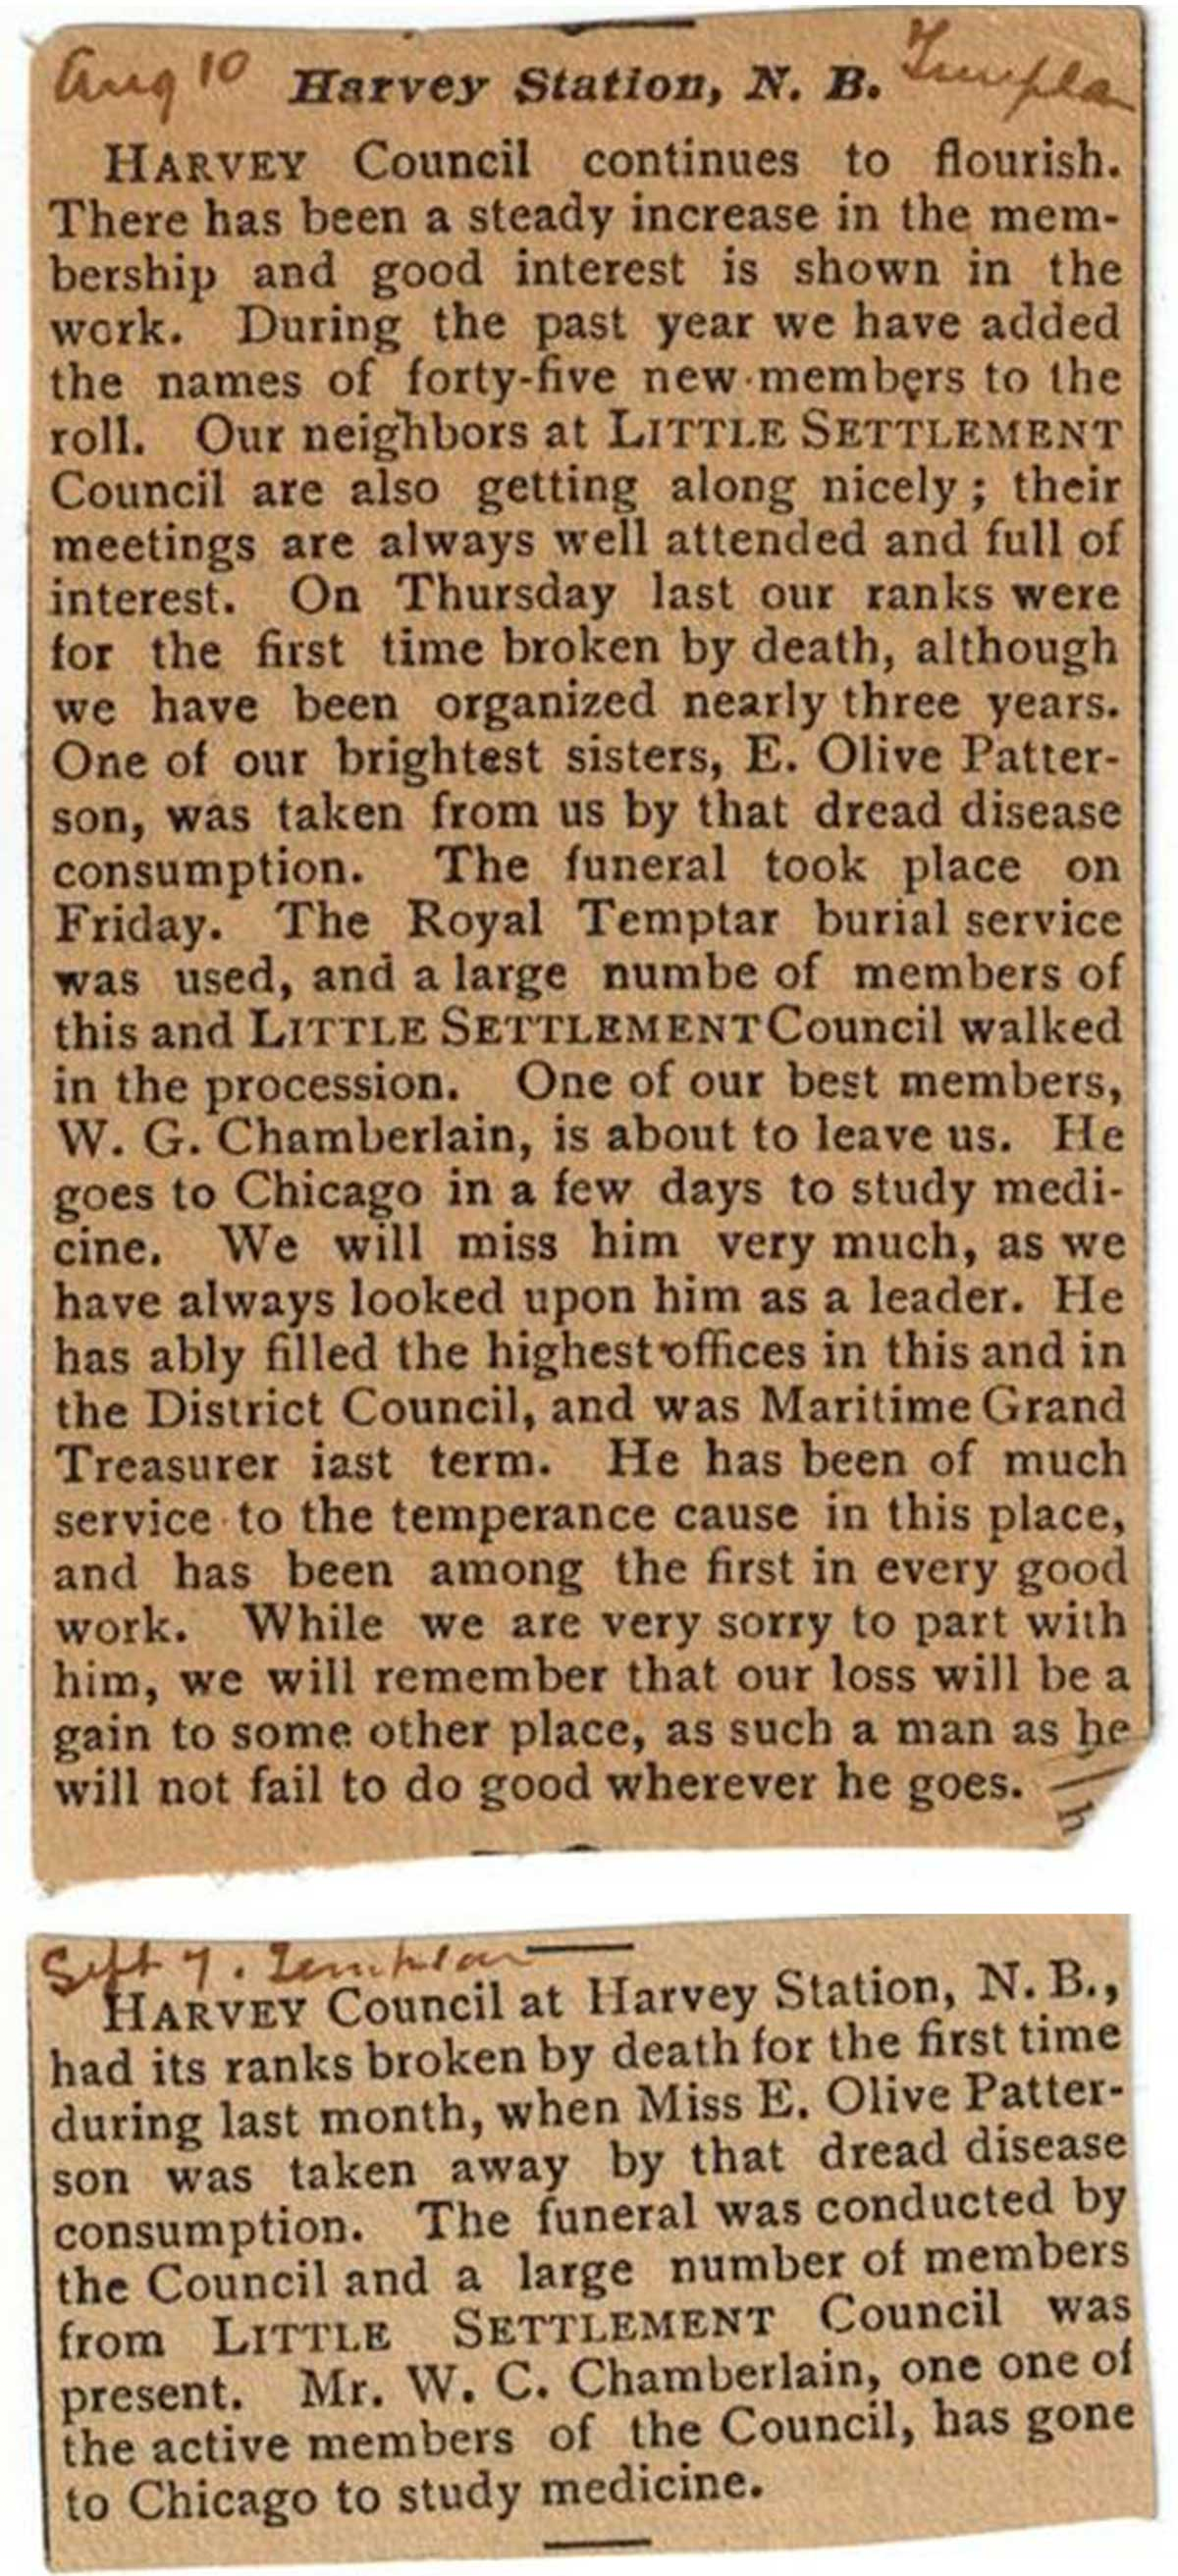 1894 newspaper clipping regarding temperance movement in Harvey